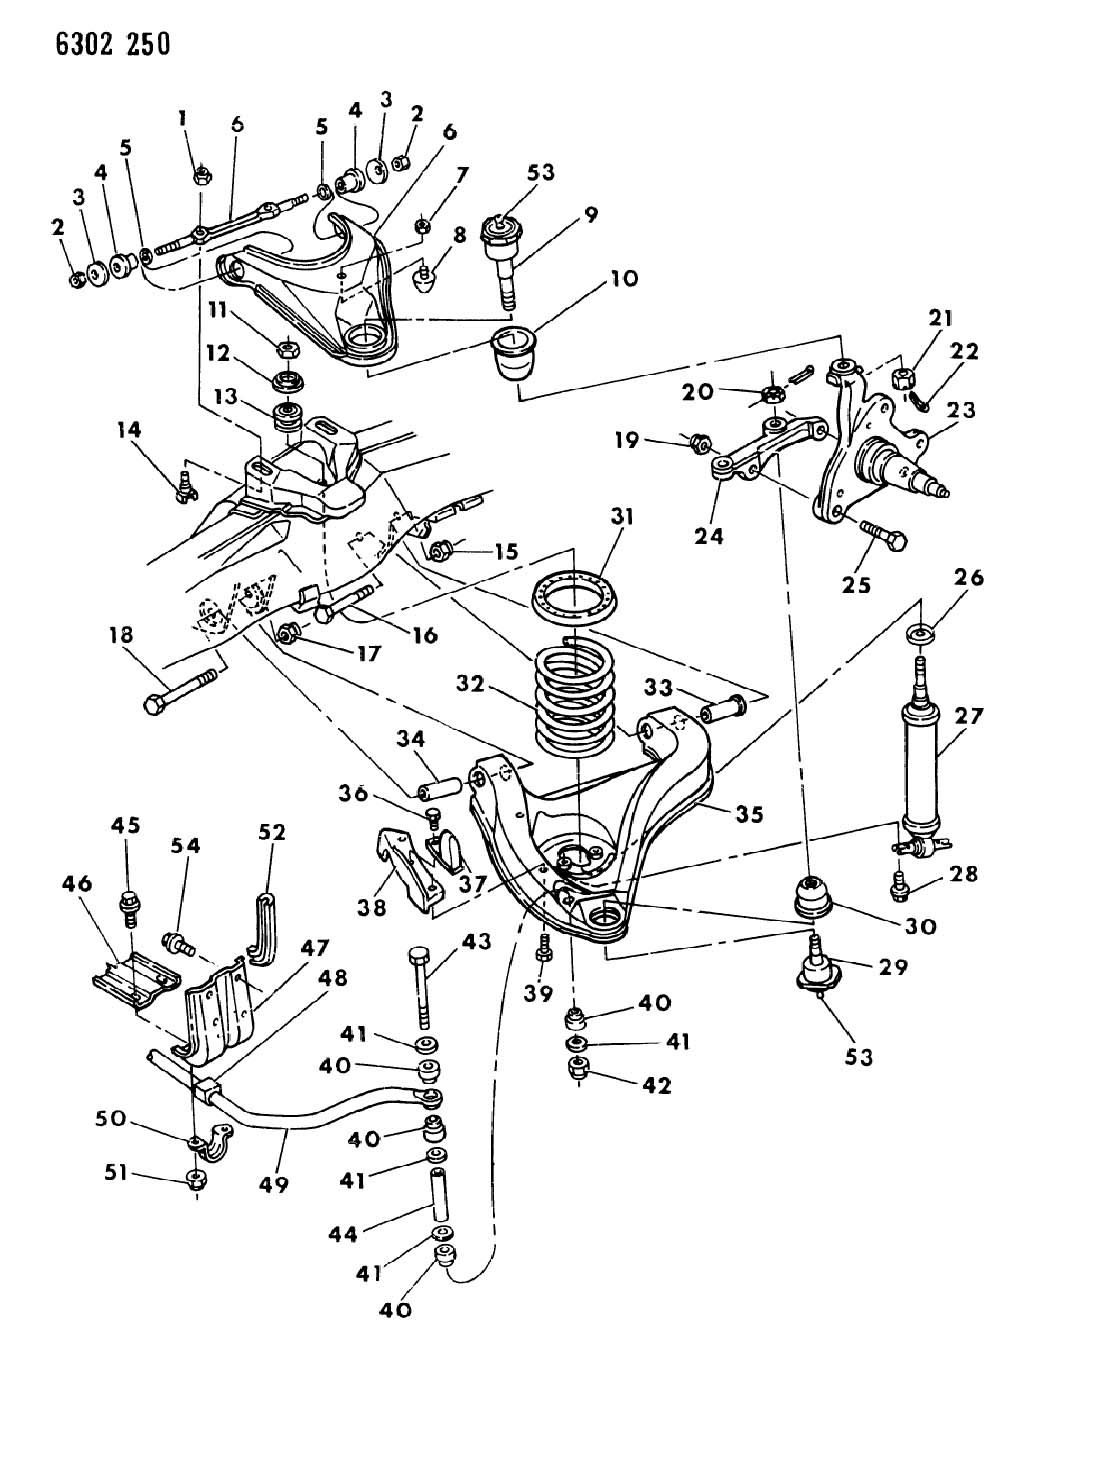 Shocks 2003 Dodge Neon Front Suspension Diagram